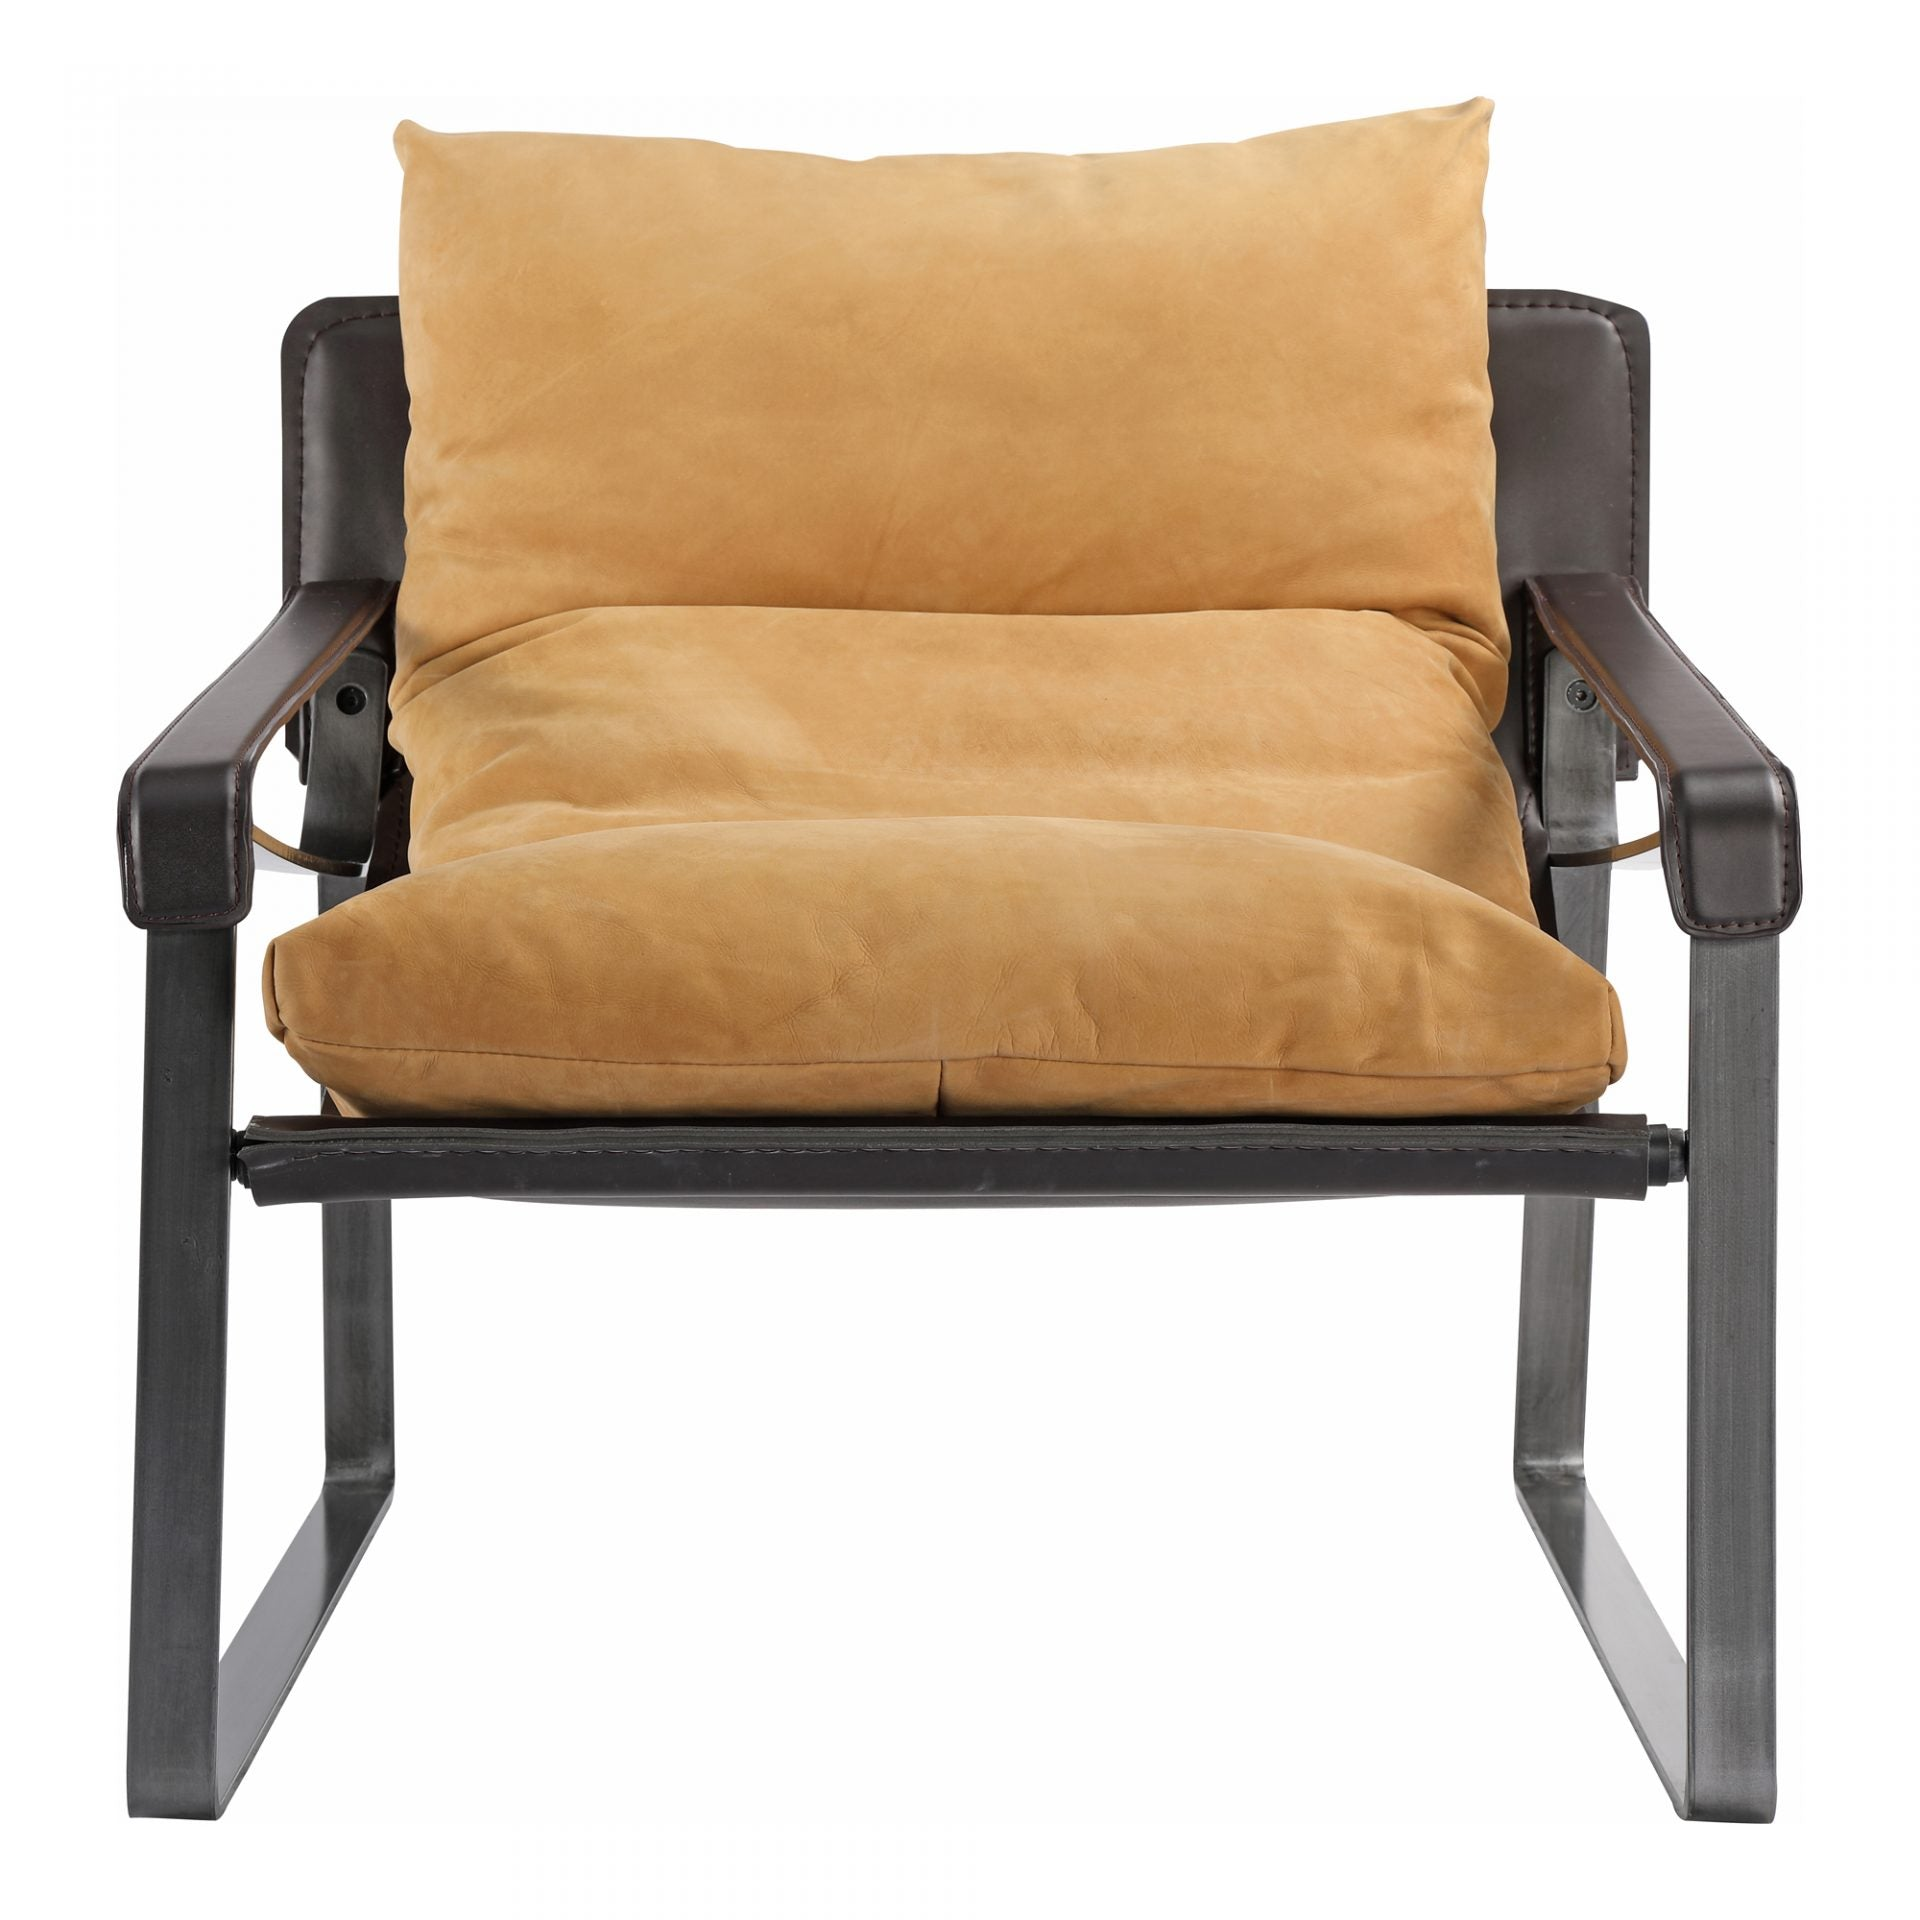 CONNOR CLUB CHAIR - TAN